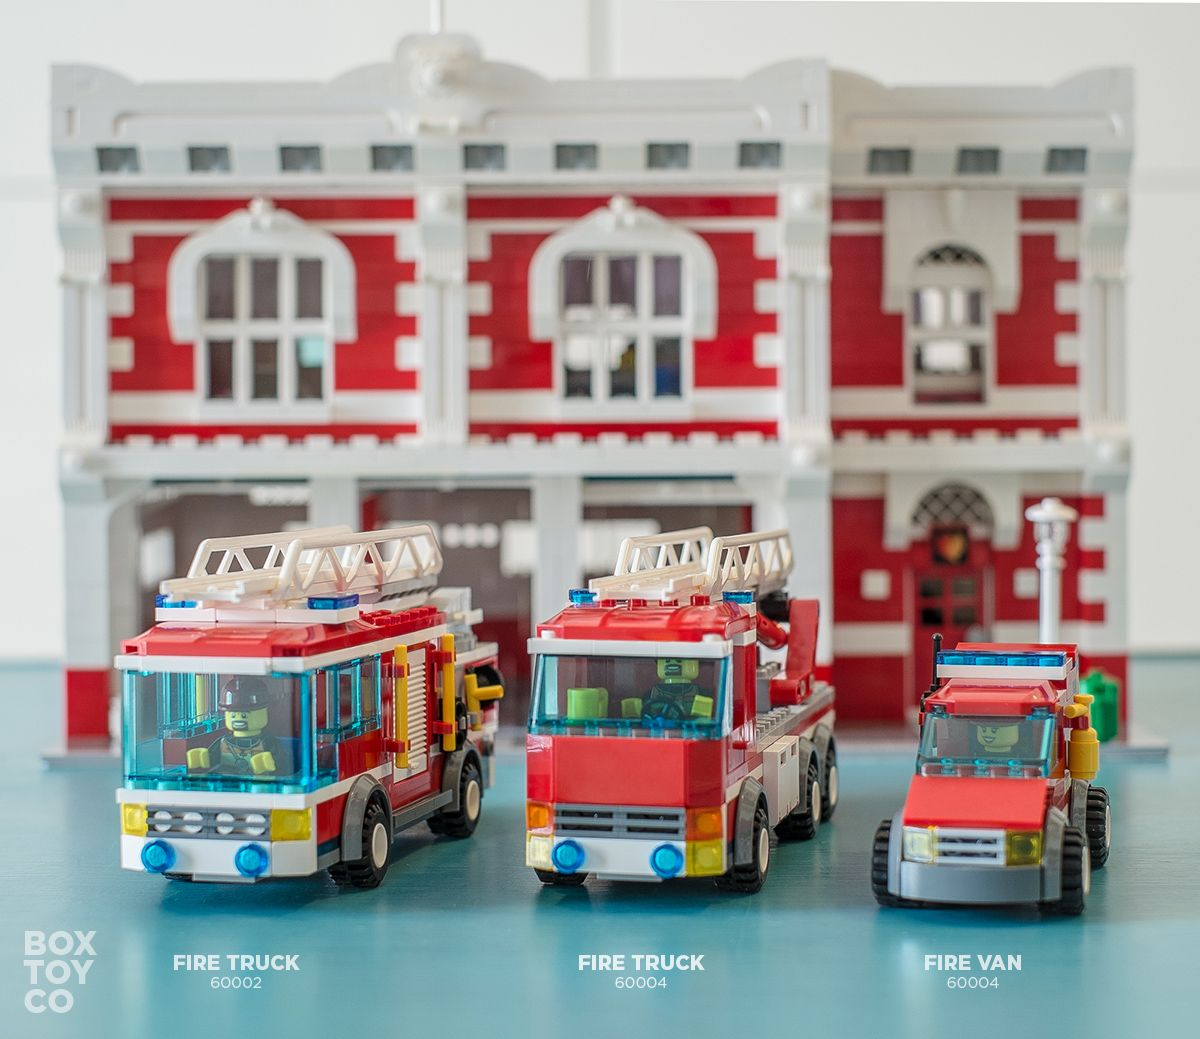 Lego Fire Truck 60004 And 60002 By The Classic Lego Fire Station Moc